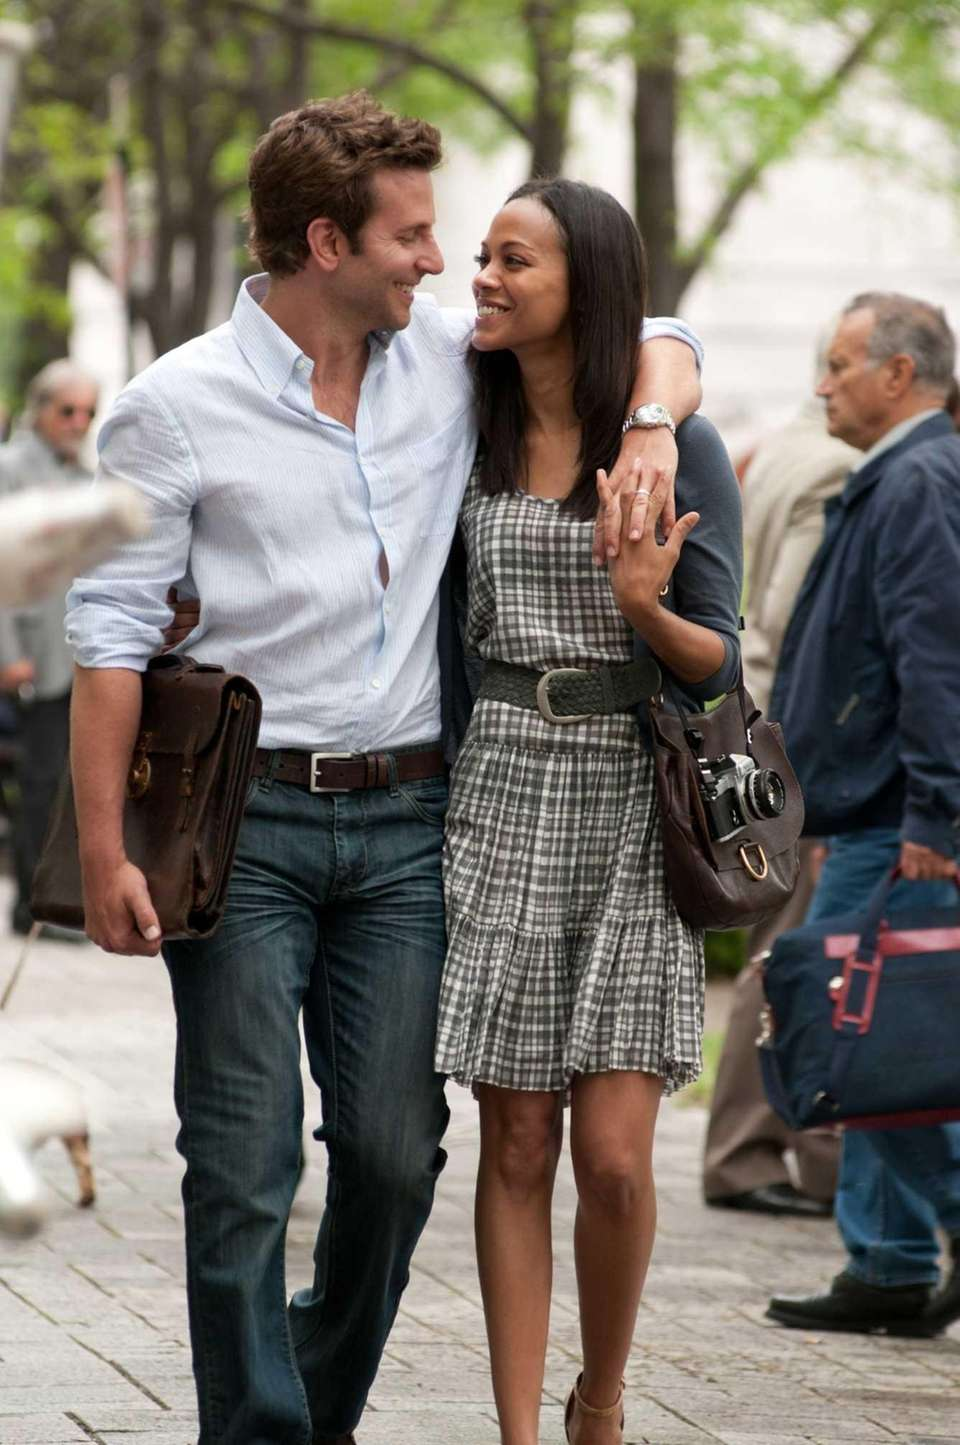 Bradley Cooper (as Rory Jansen) and Zoe Saldana